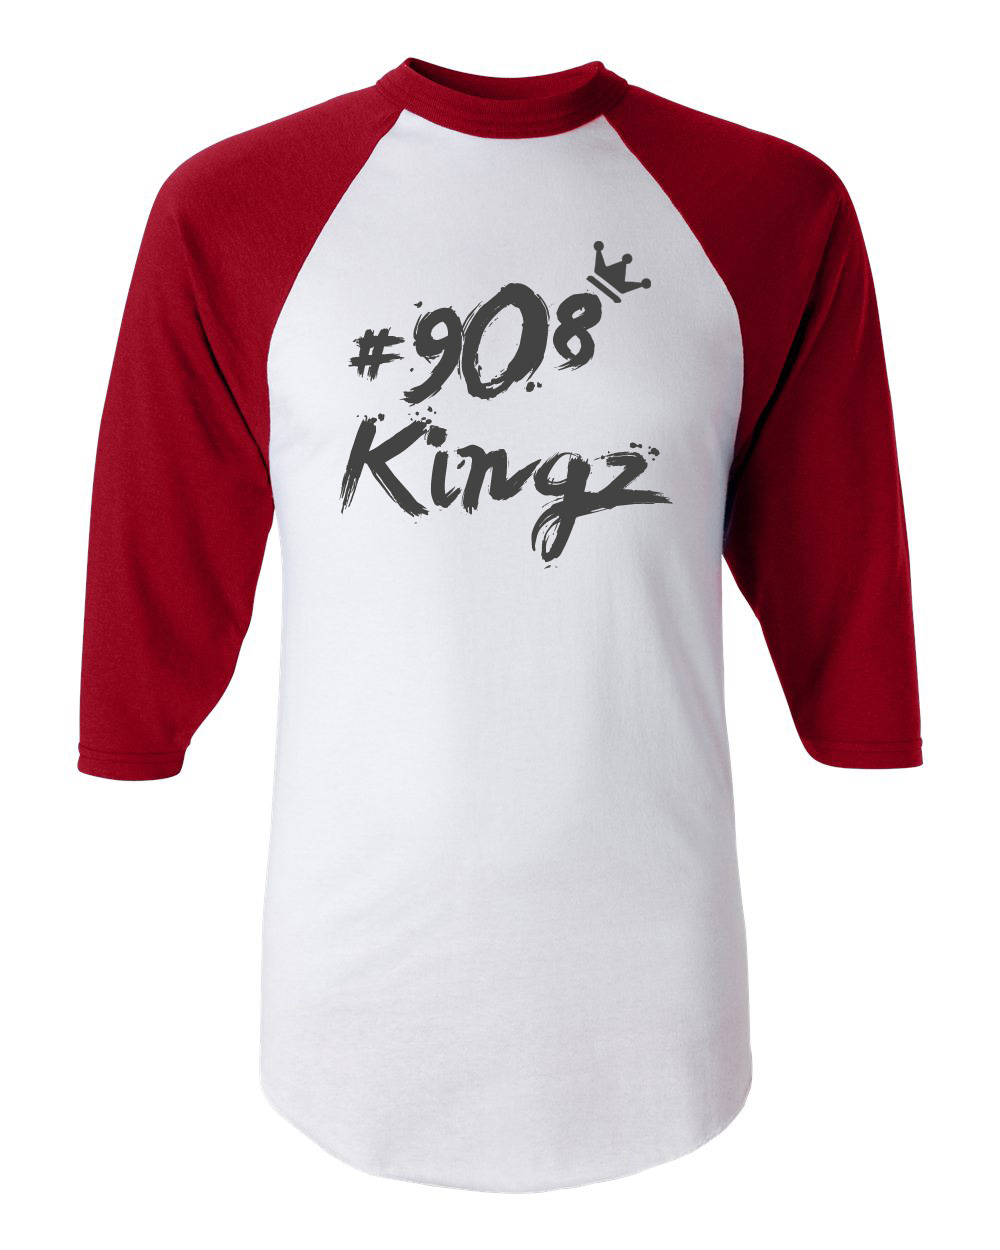 908 Kingz - Baseball Tee (red, white, black)